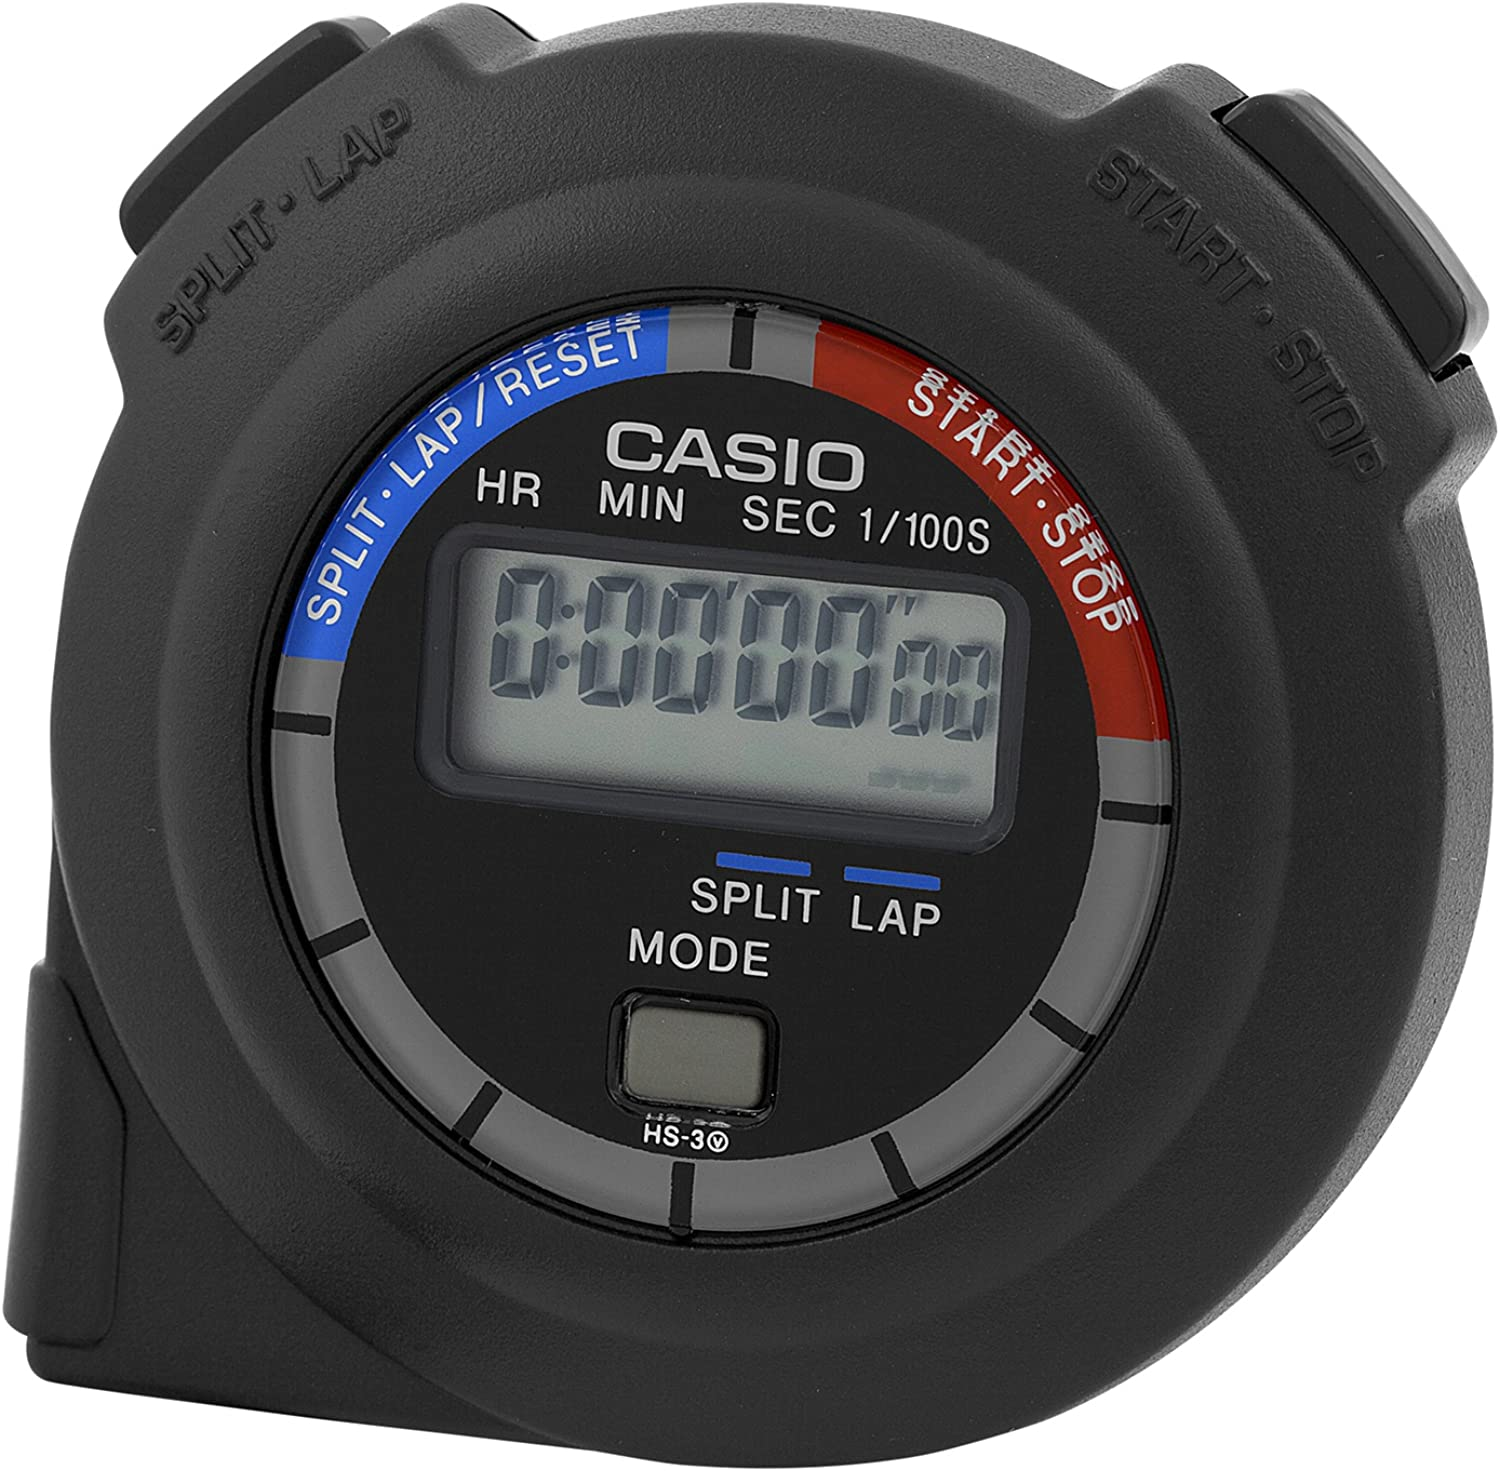 Casio Handheld Stopwatch Timer Model HS-3V-1R